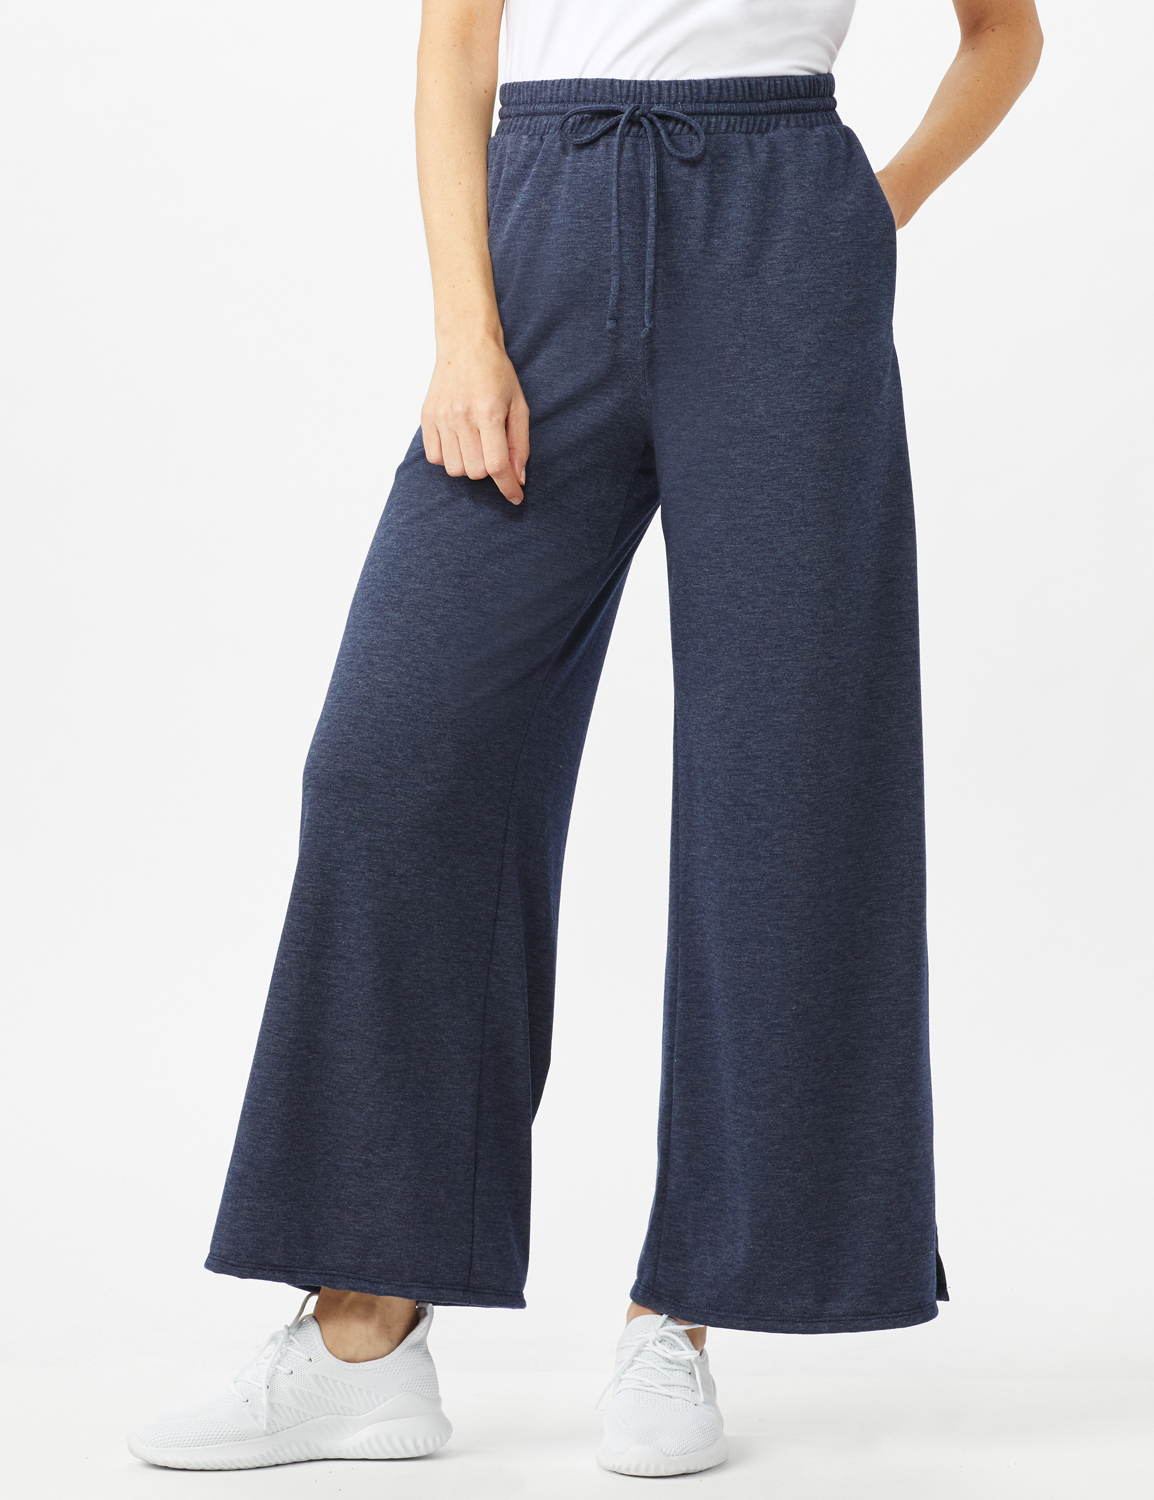 Drawstring Heathered Navy Knit Pant - Misses - Blue - Front